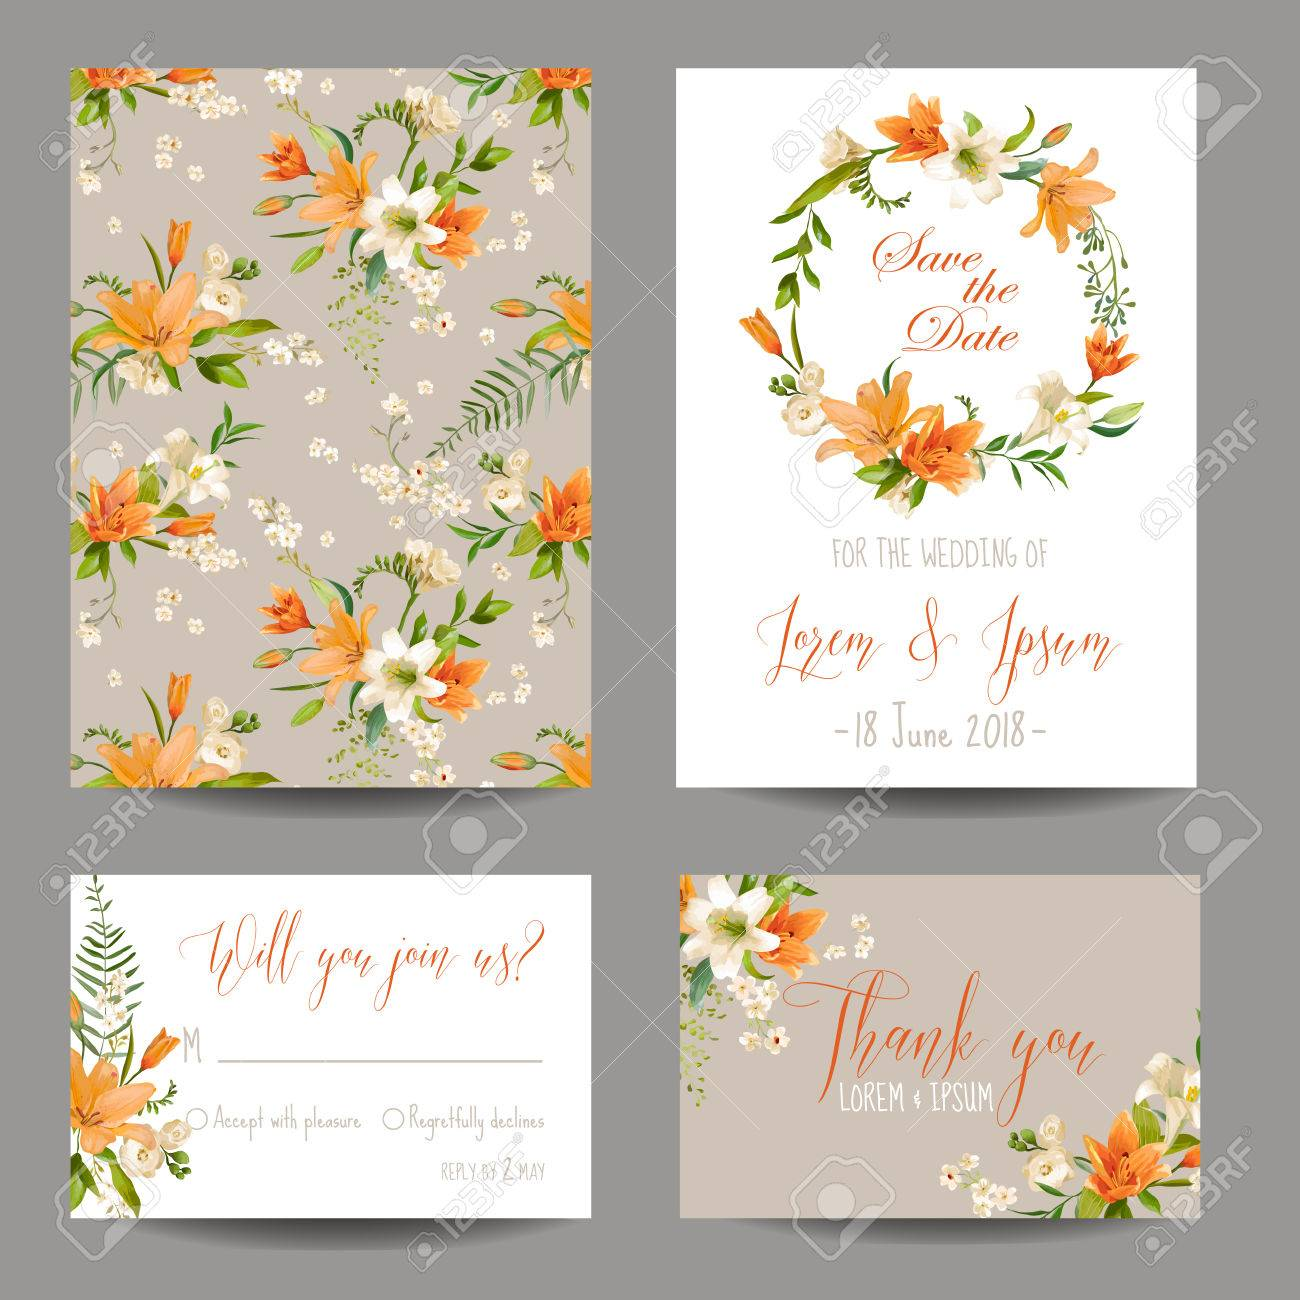 save the date card wedding invitation set autumn lily floral